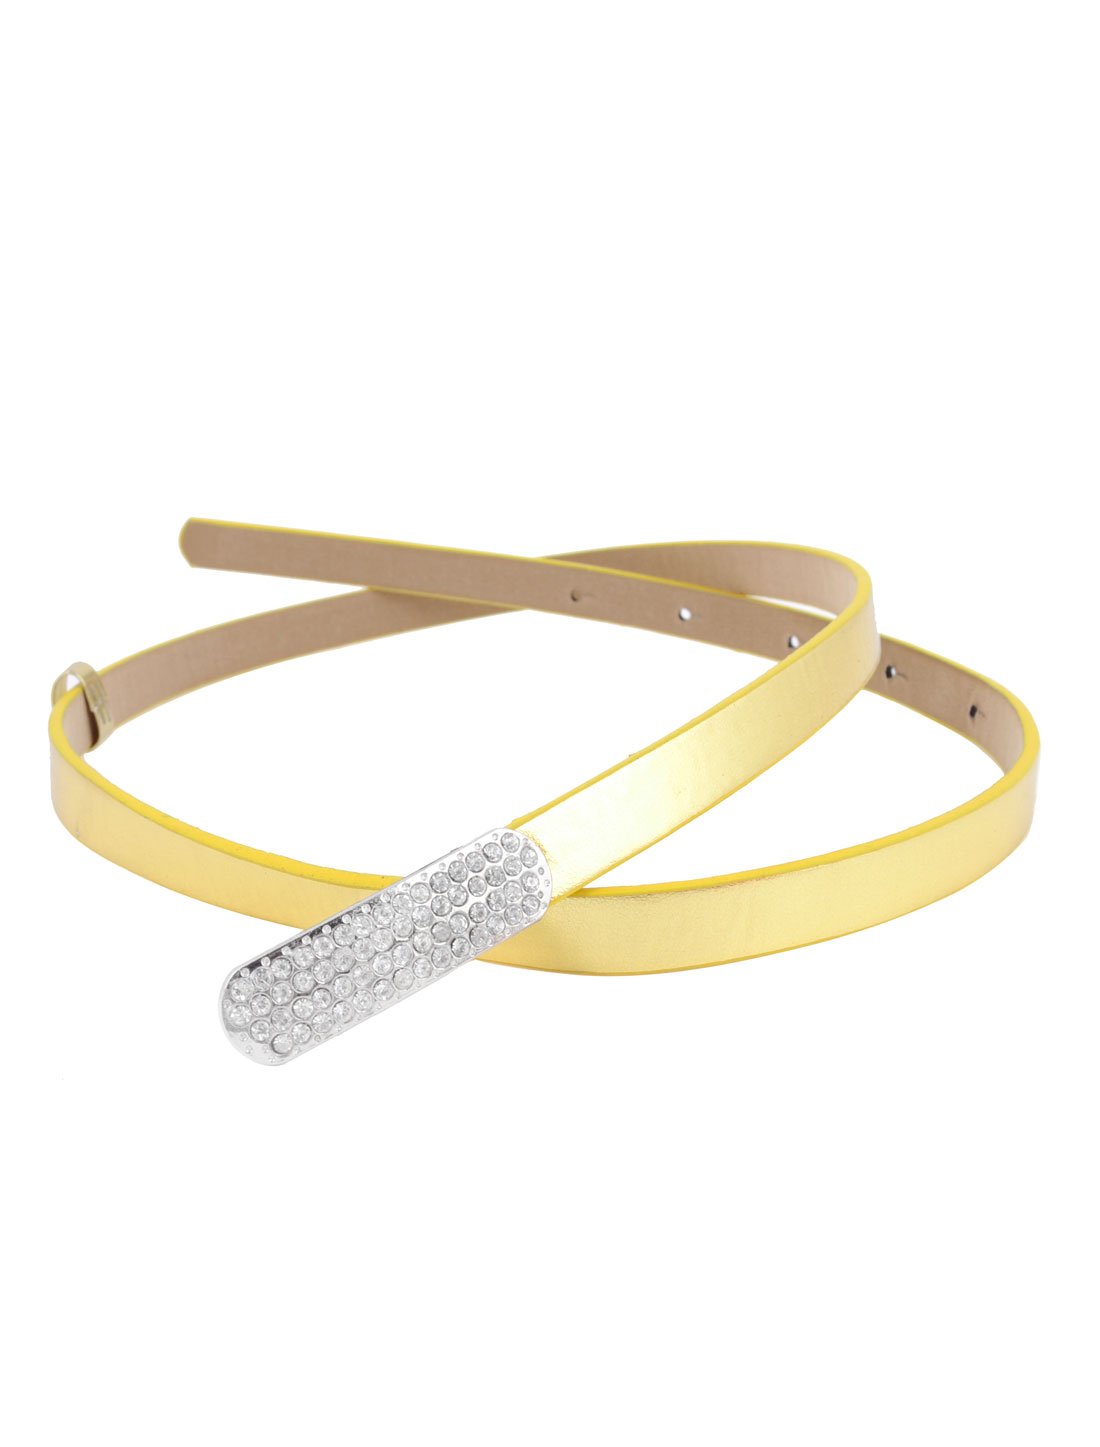 Lady Metal Press Stud Buckle Faux Leather Band Slim Waist Belt Gold Tone